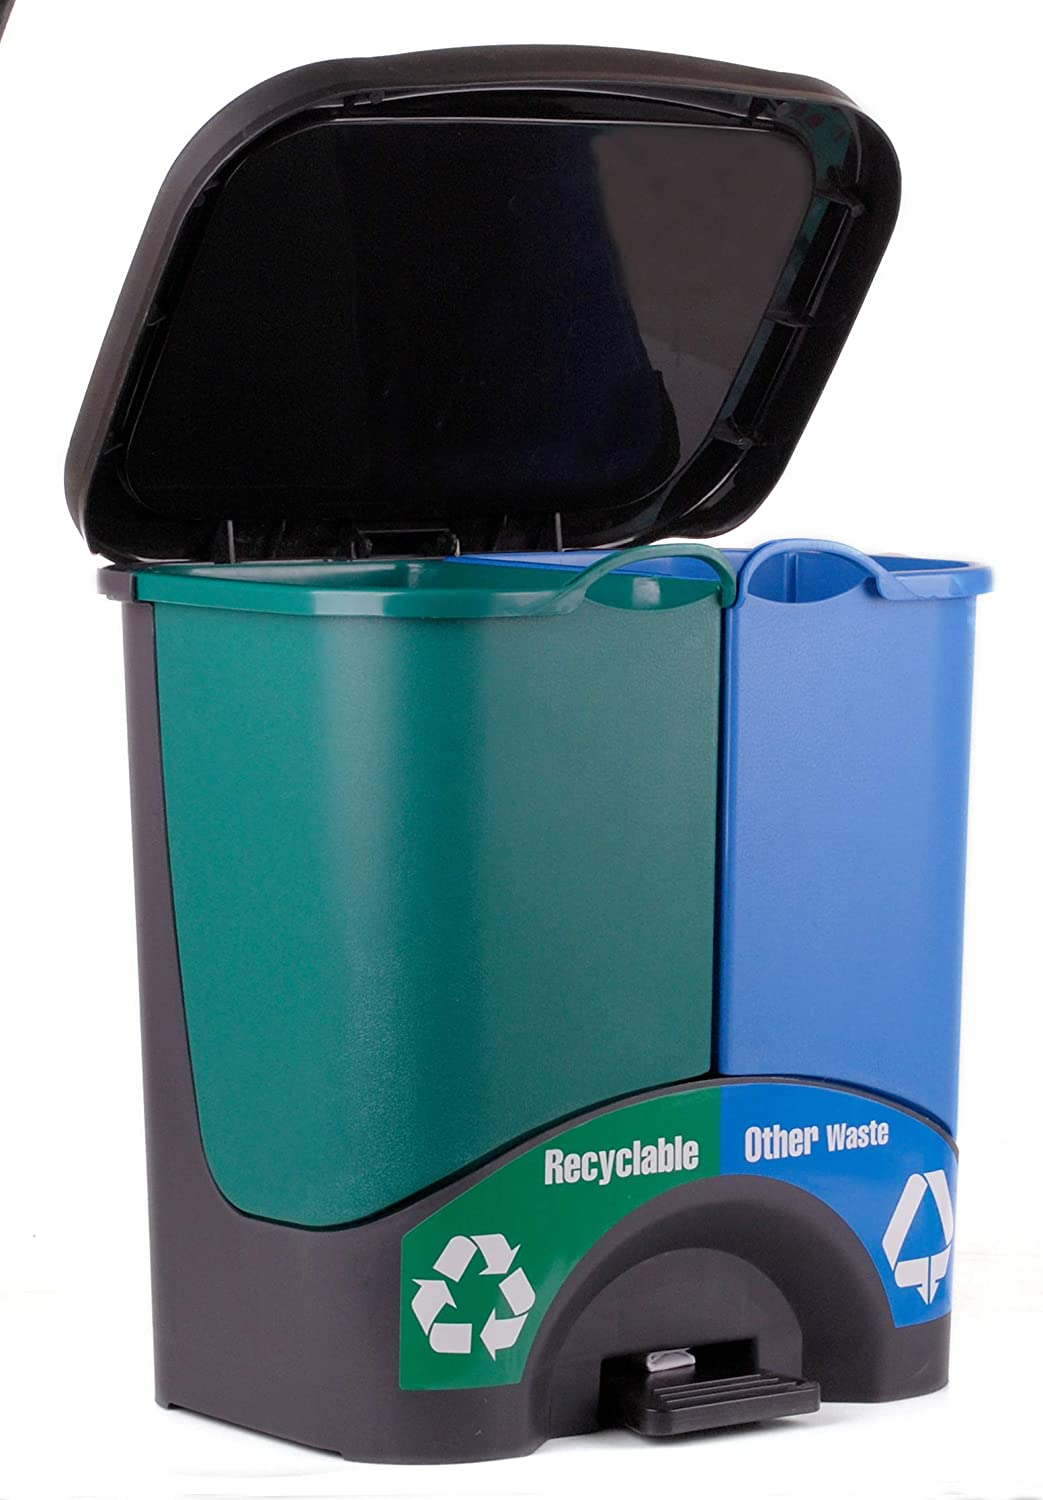 """Mintra Home Trash Bins - Double Bin (Green/Blue) Recycle, Trash, Can, Bin, Garbage, Plastic, Wastebasket, Adjustable, Removable, Home, Office, Durable""""17.5inW x 17.5inH x 10inD"""""""